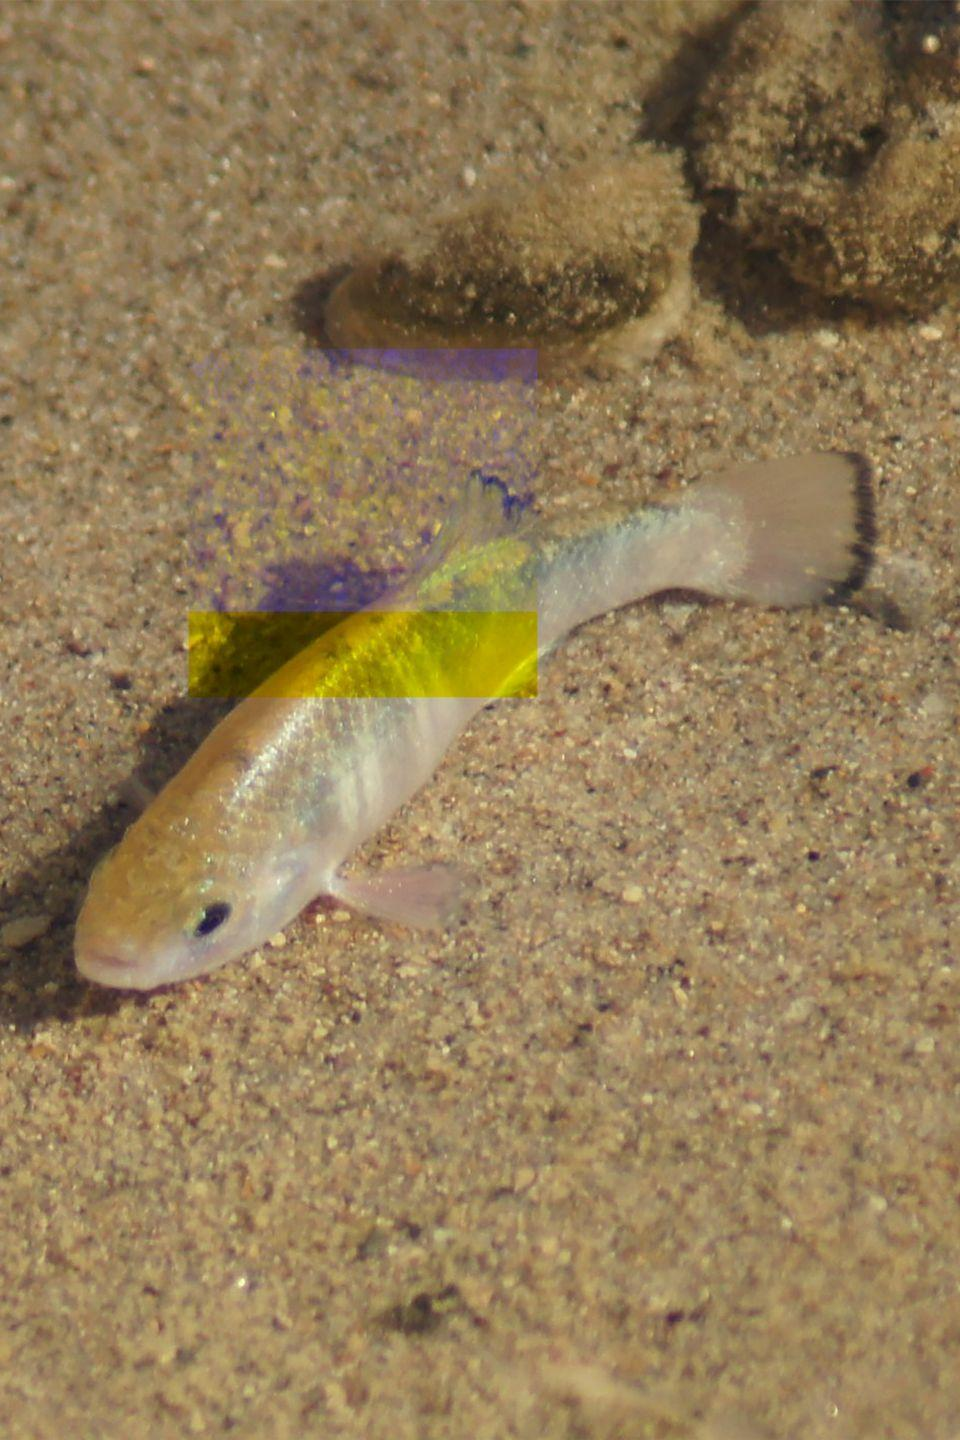 <p>When it comes to fish, you often categorize them as fresh- or saltwater-thriving. But give pupfish <em>any</em> kind of water—fresh, salty, freezing, warm—and they can survive just fine, biologists say. Researchers believe they have this ability because they evolved by only having low-quality water during the Ice Ages.</p>